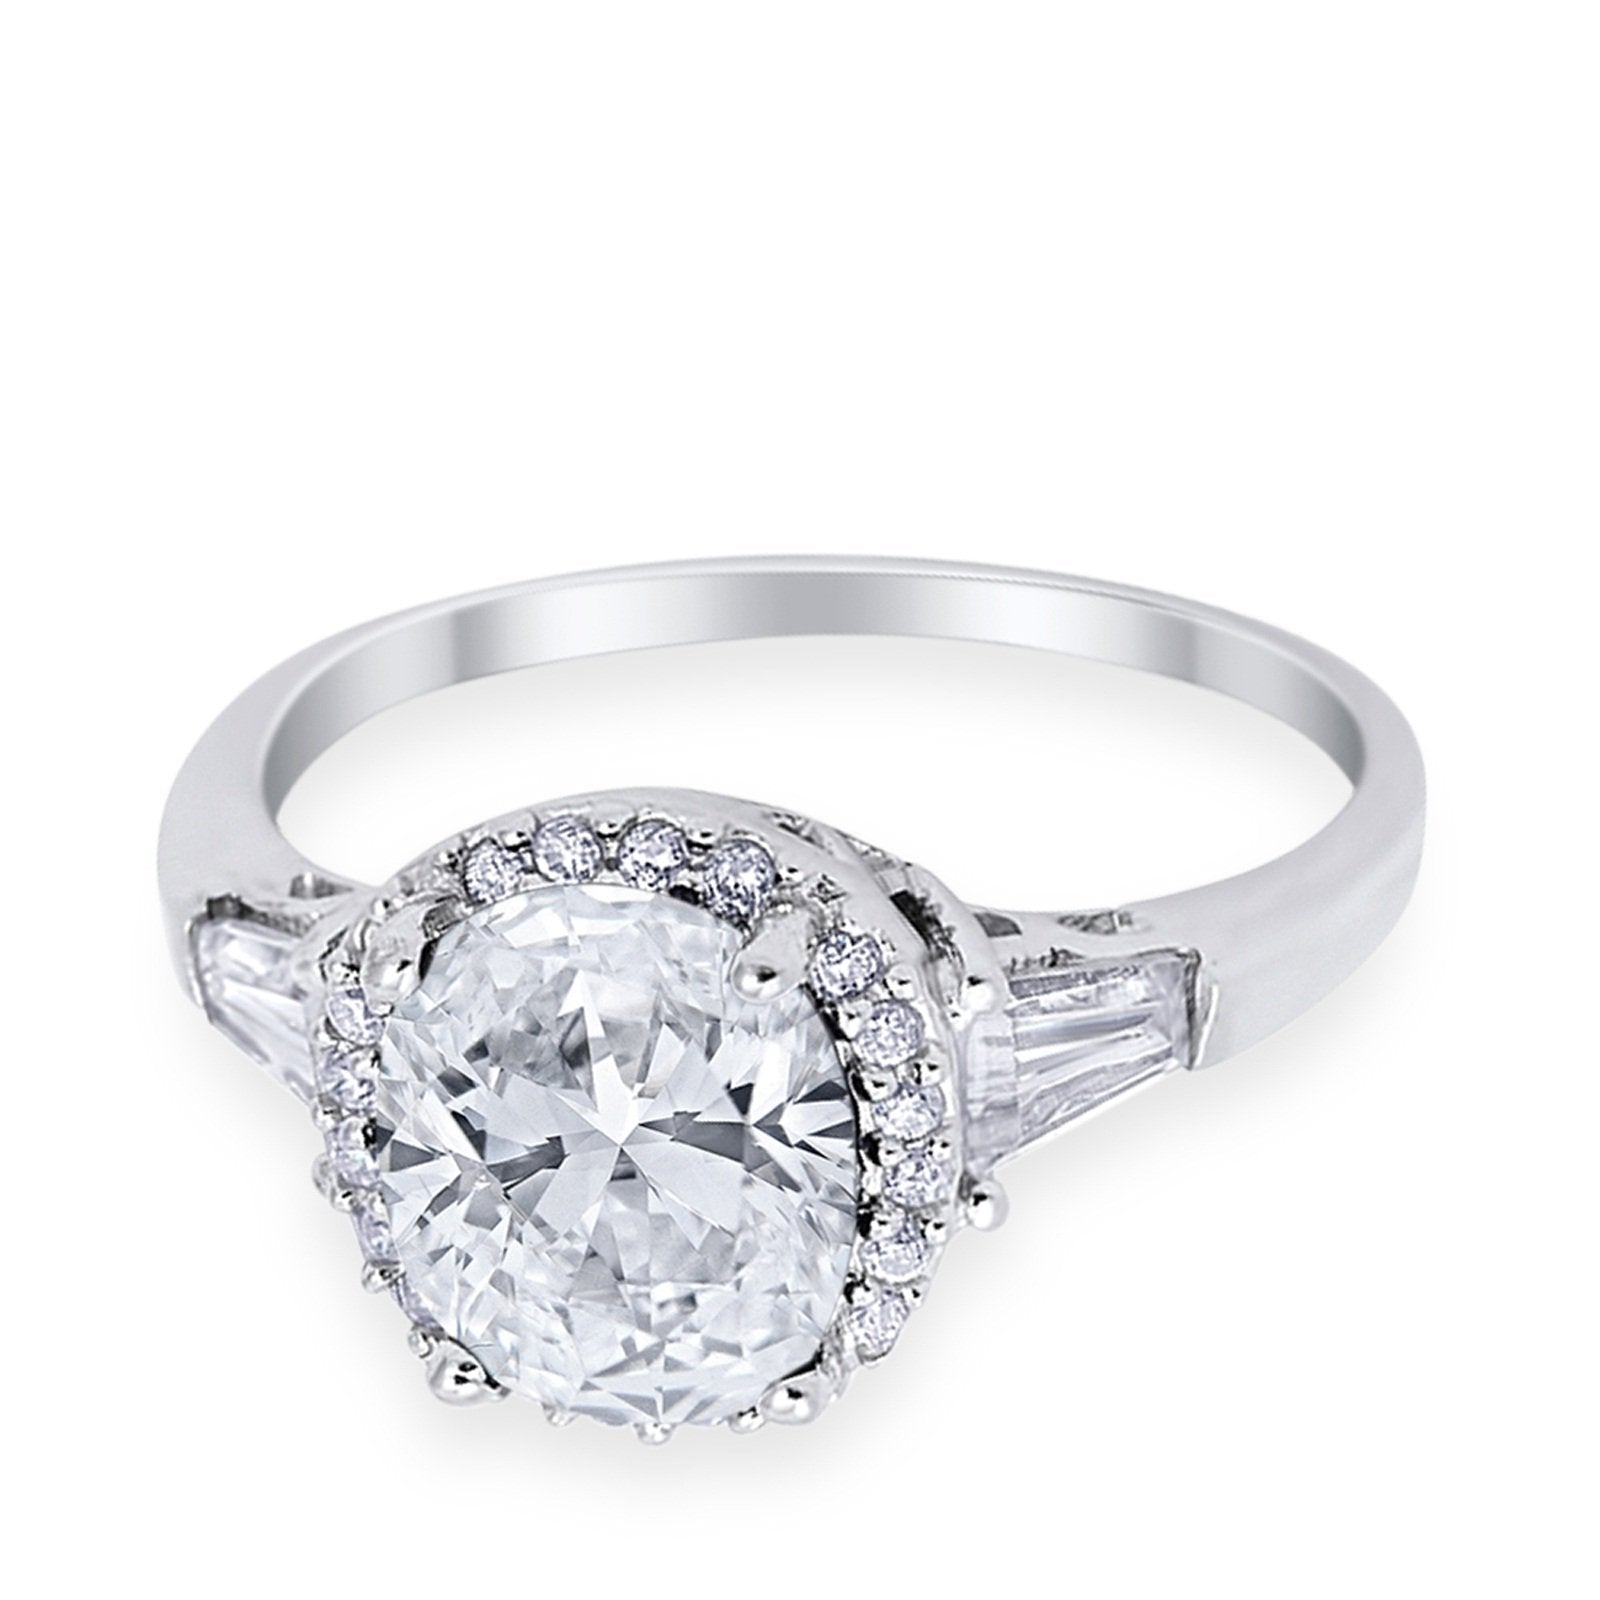 Halo Engagement Ring Baguette Simulated Cubic Zirconia 925 Sterling Silver